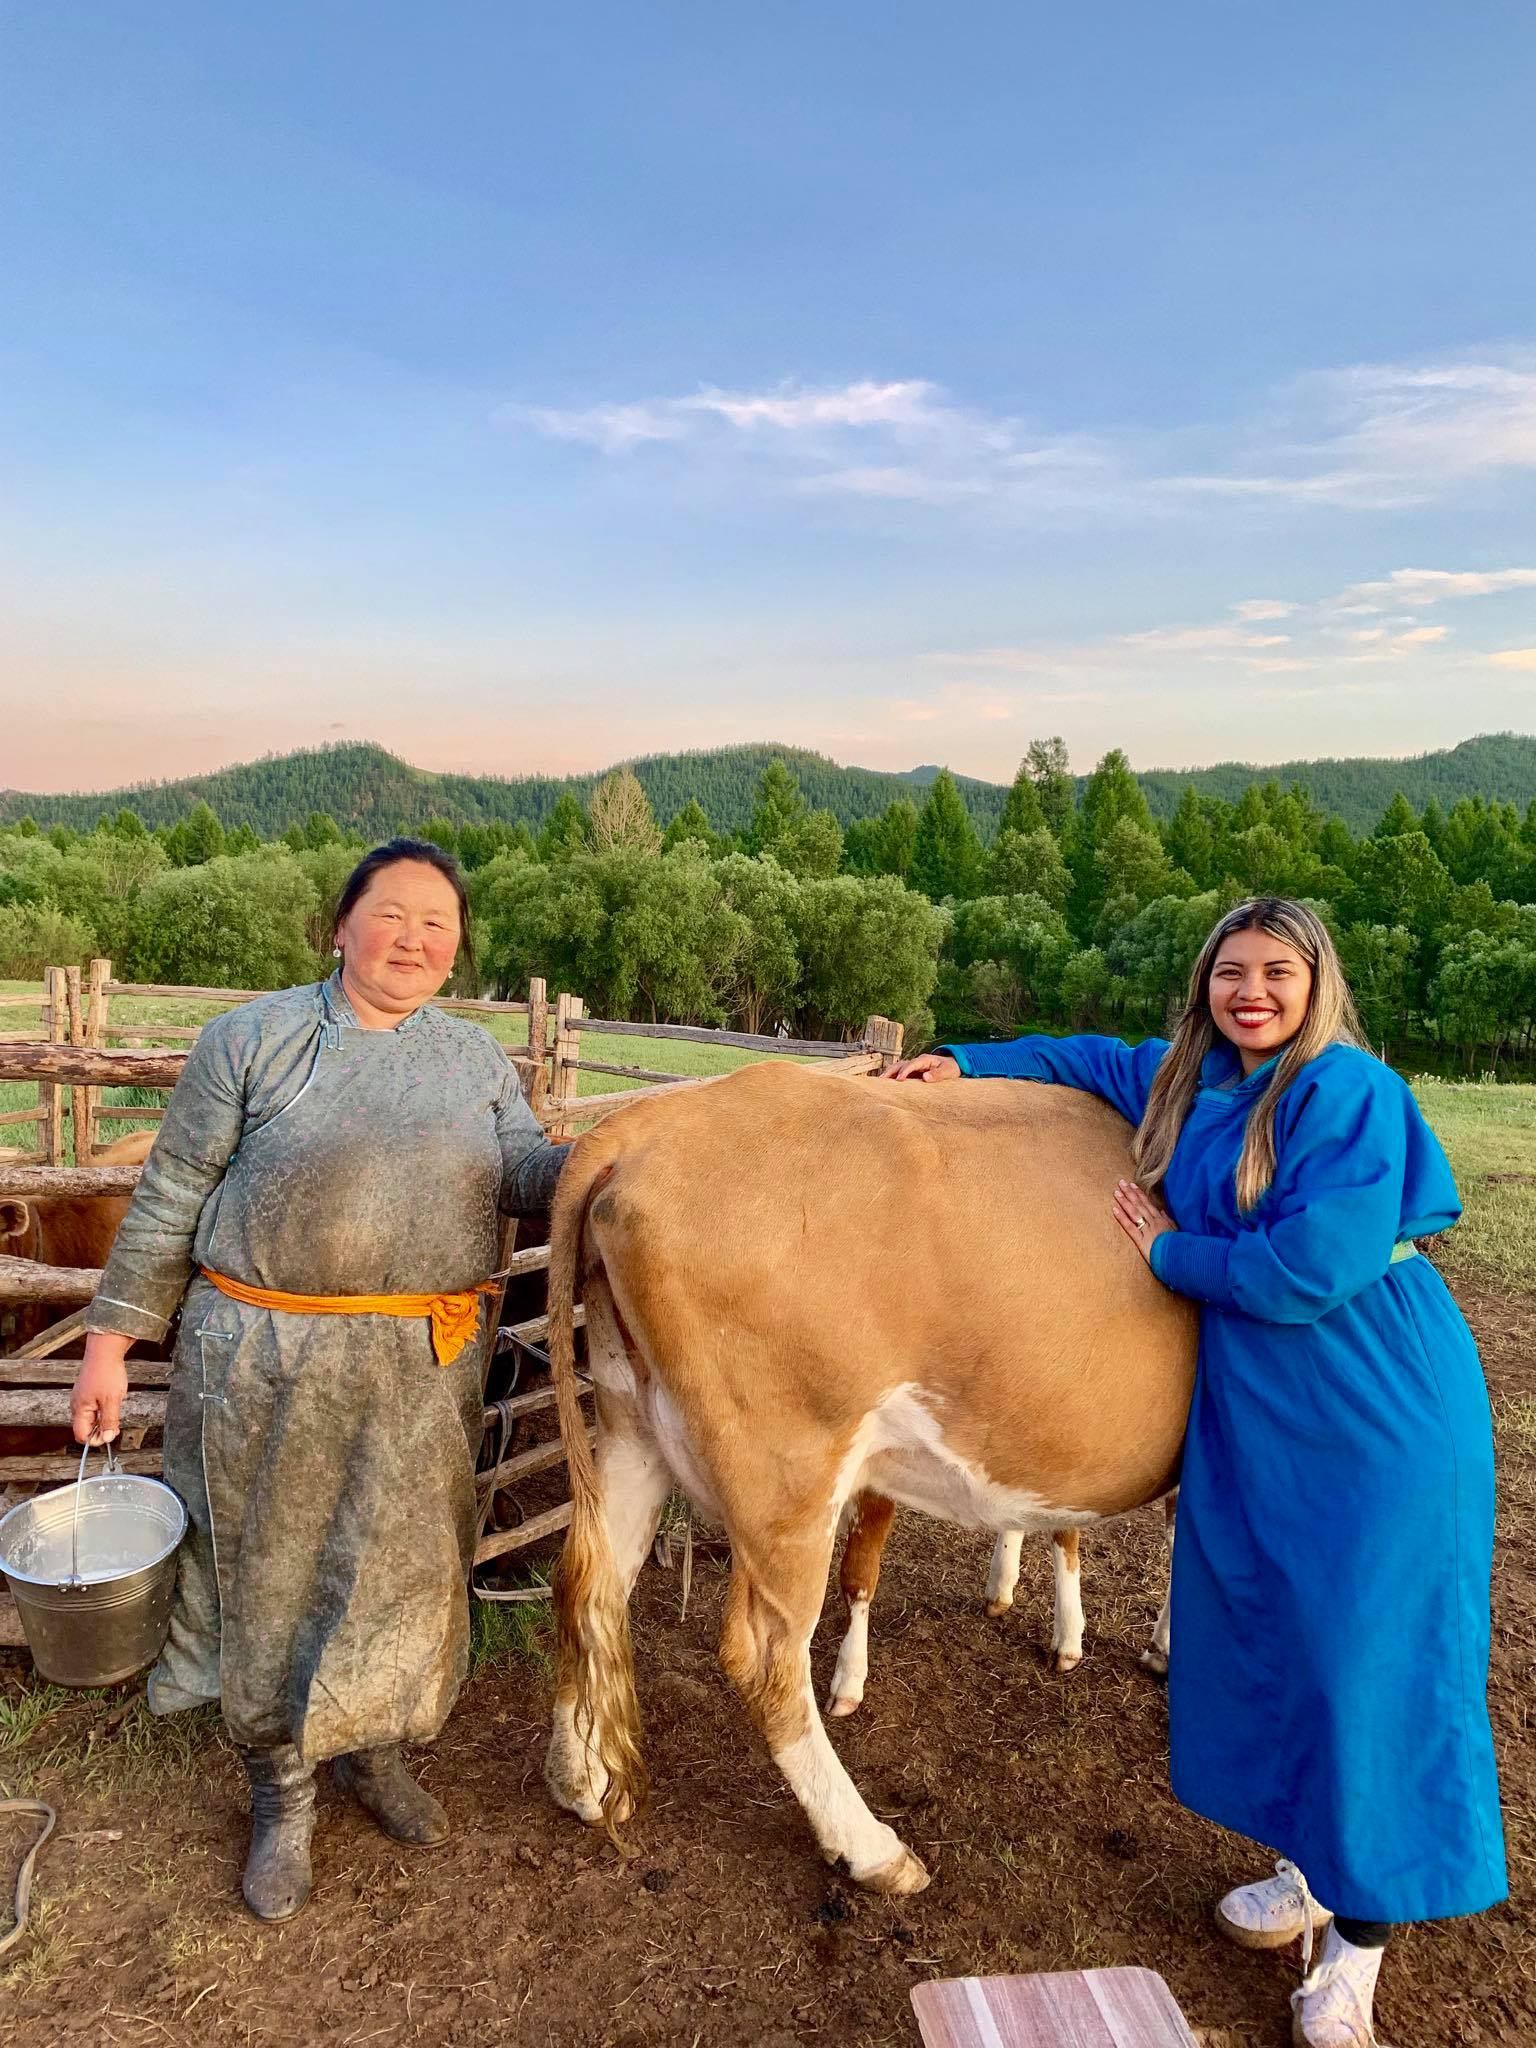 Kach Solo Travels in 2019 Hello from MONGOLIA - my 130th country26.jpg